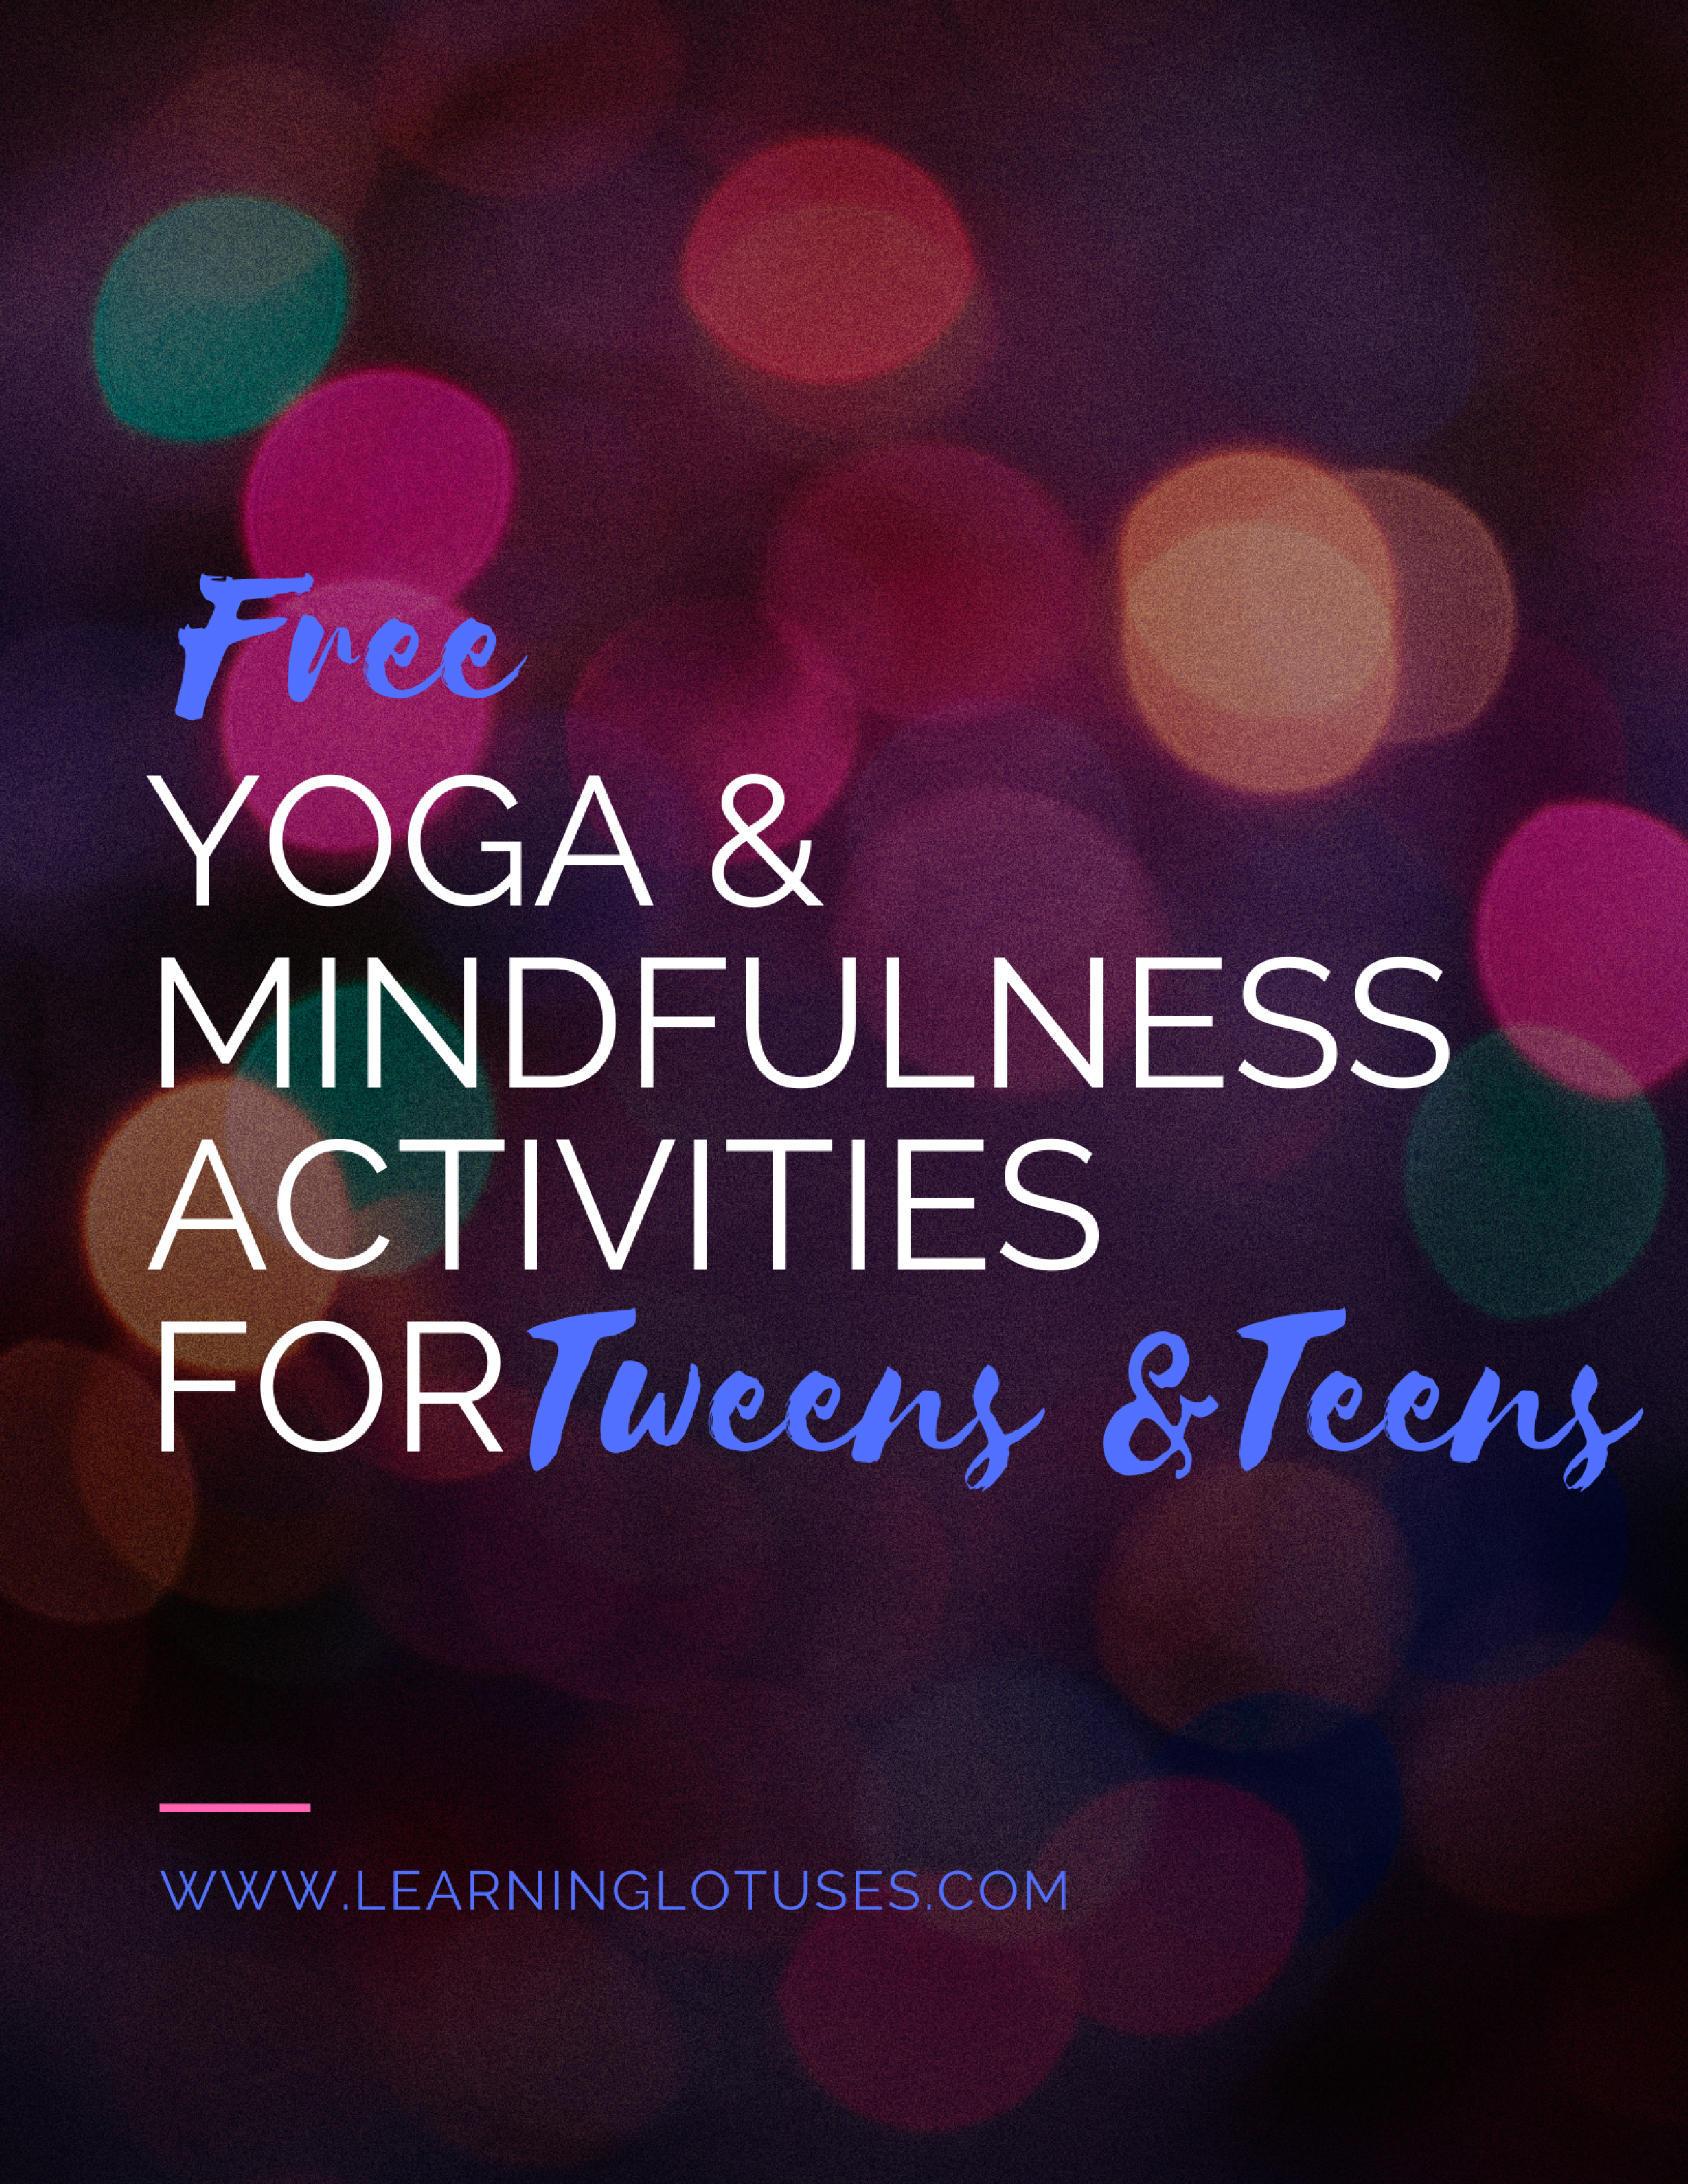 Resources From Learning Lotuses To Help You Practice Yoga